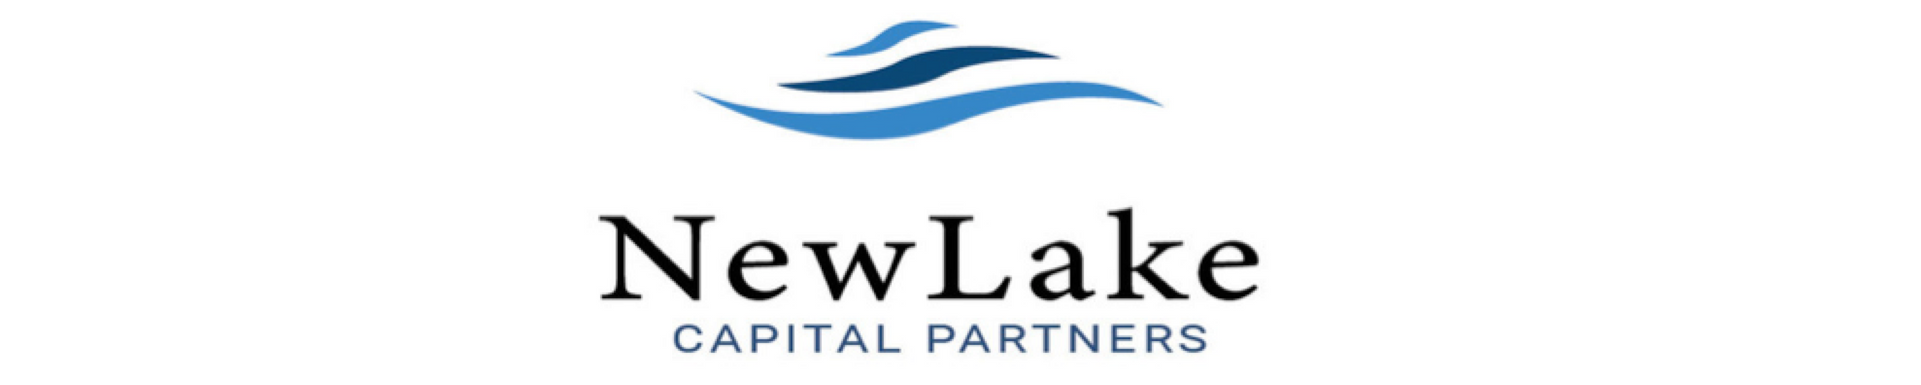 New Lake Capital Partners